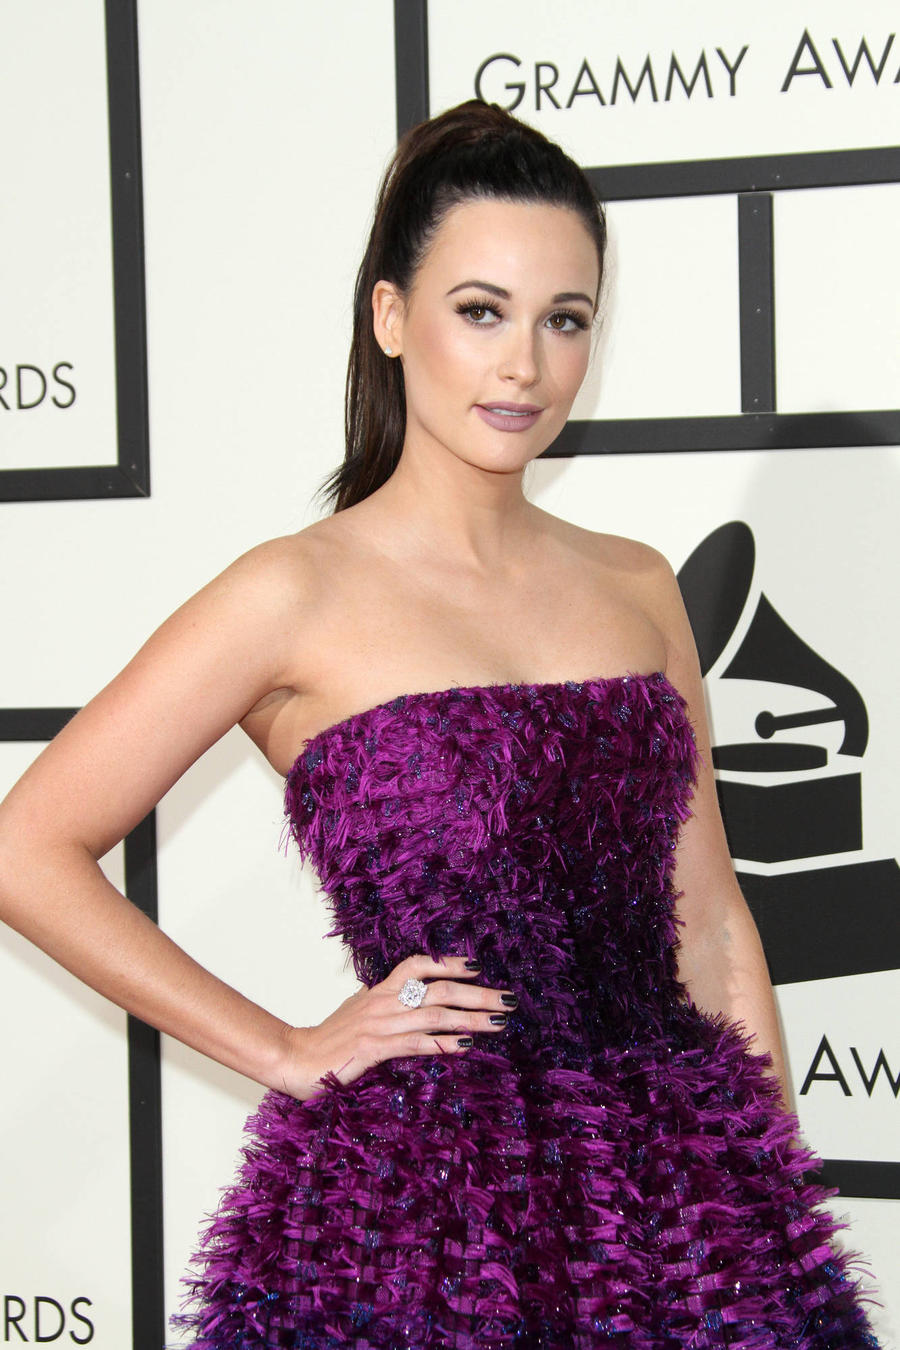 Kacey Musgraves Looking Forward To Getting Home For Christmas